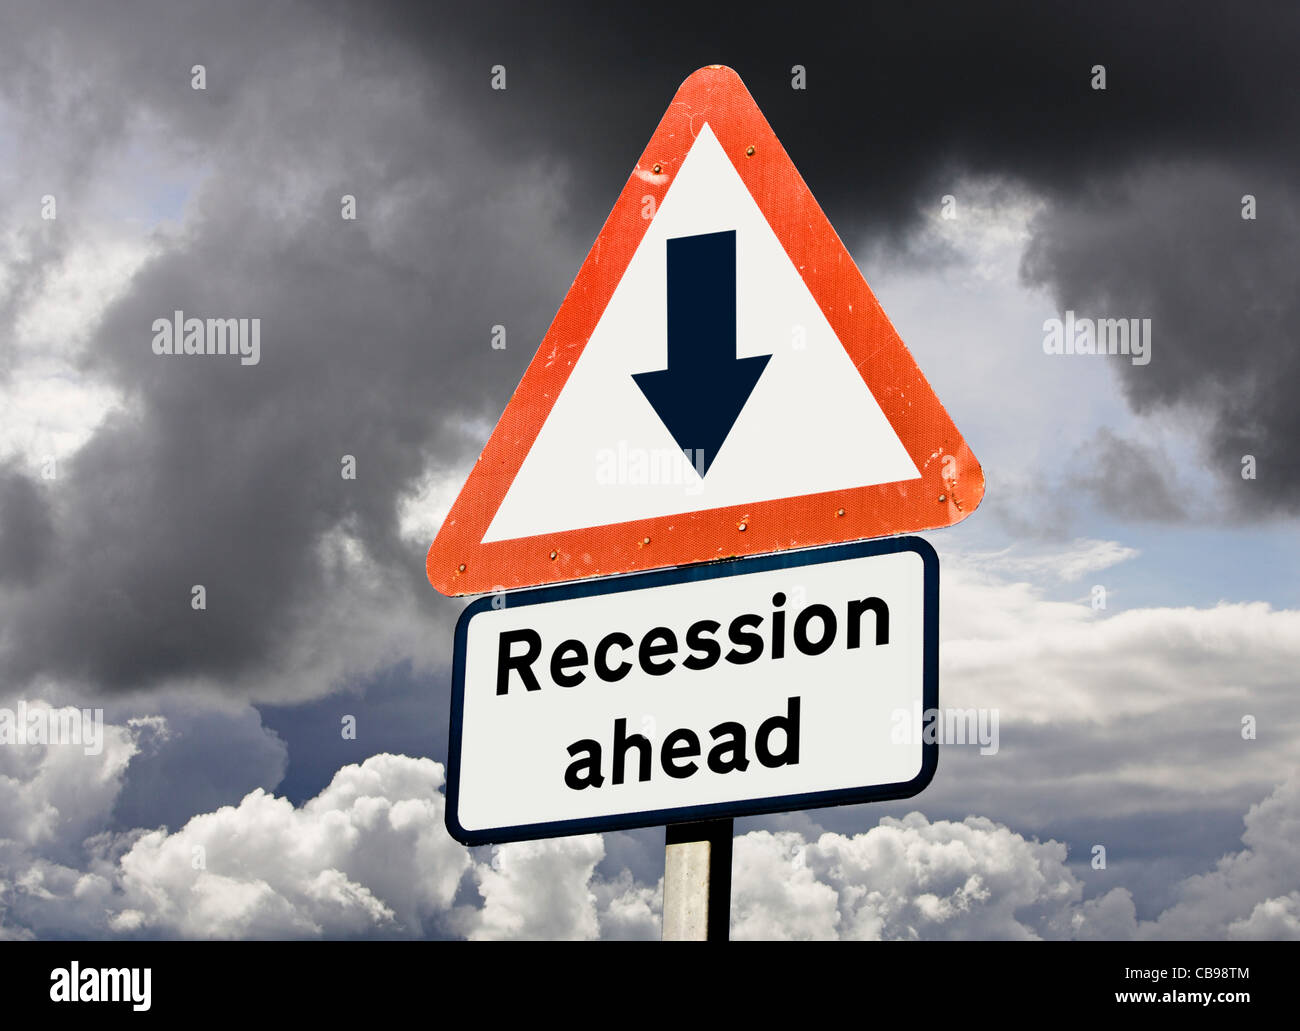 Recession ahead economic concept UK against a stormy sky - Stock Image